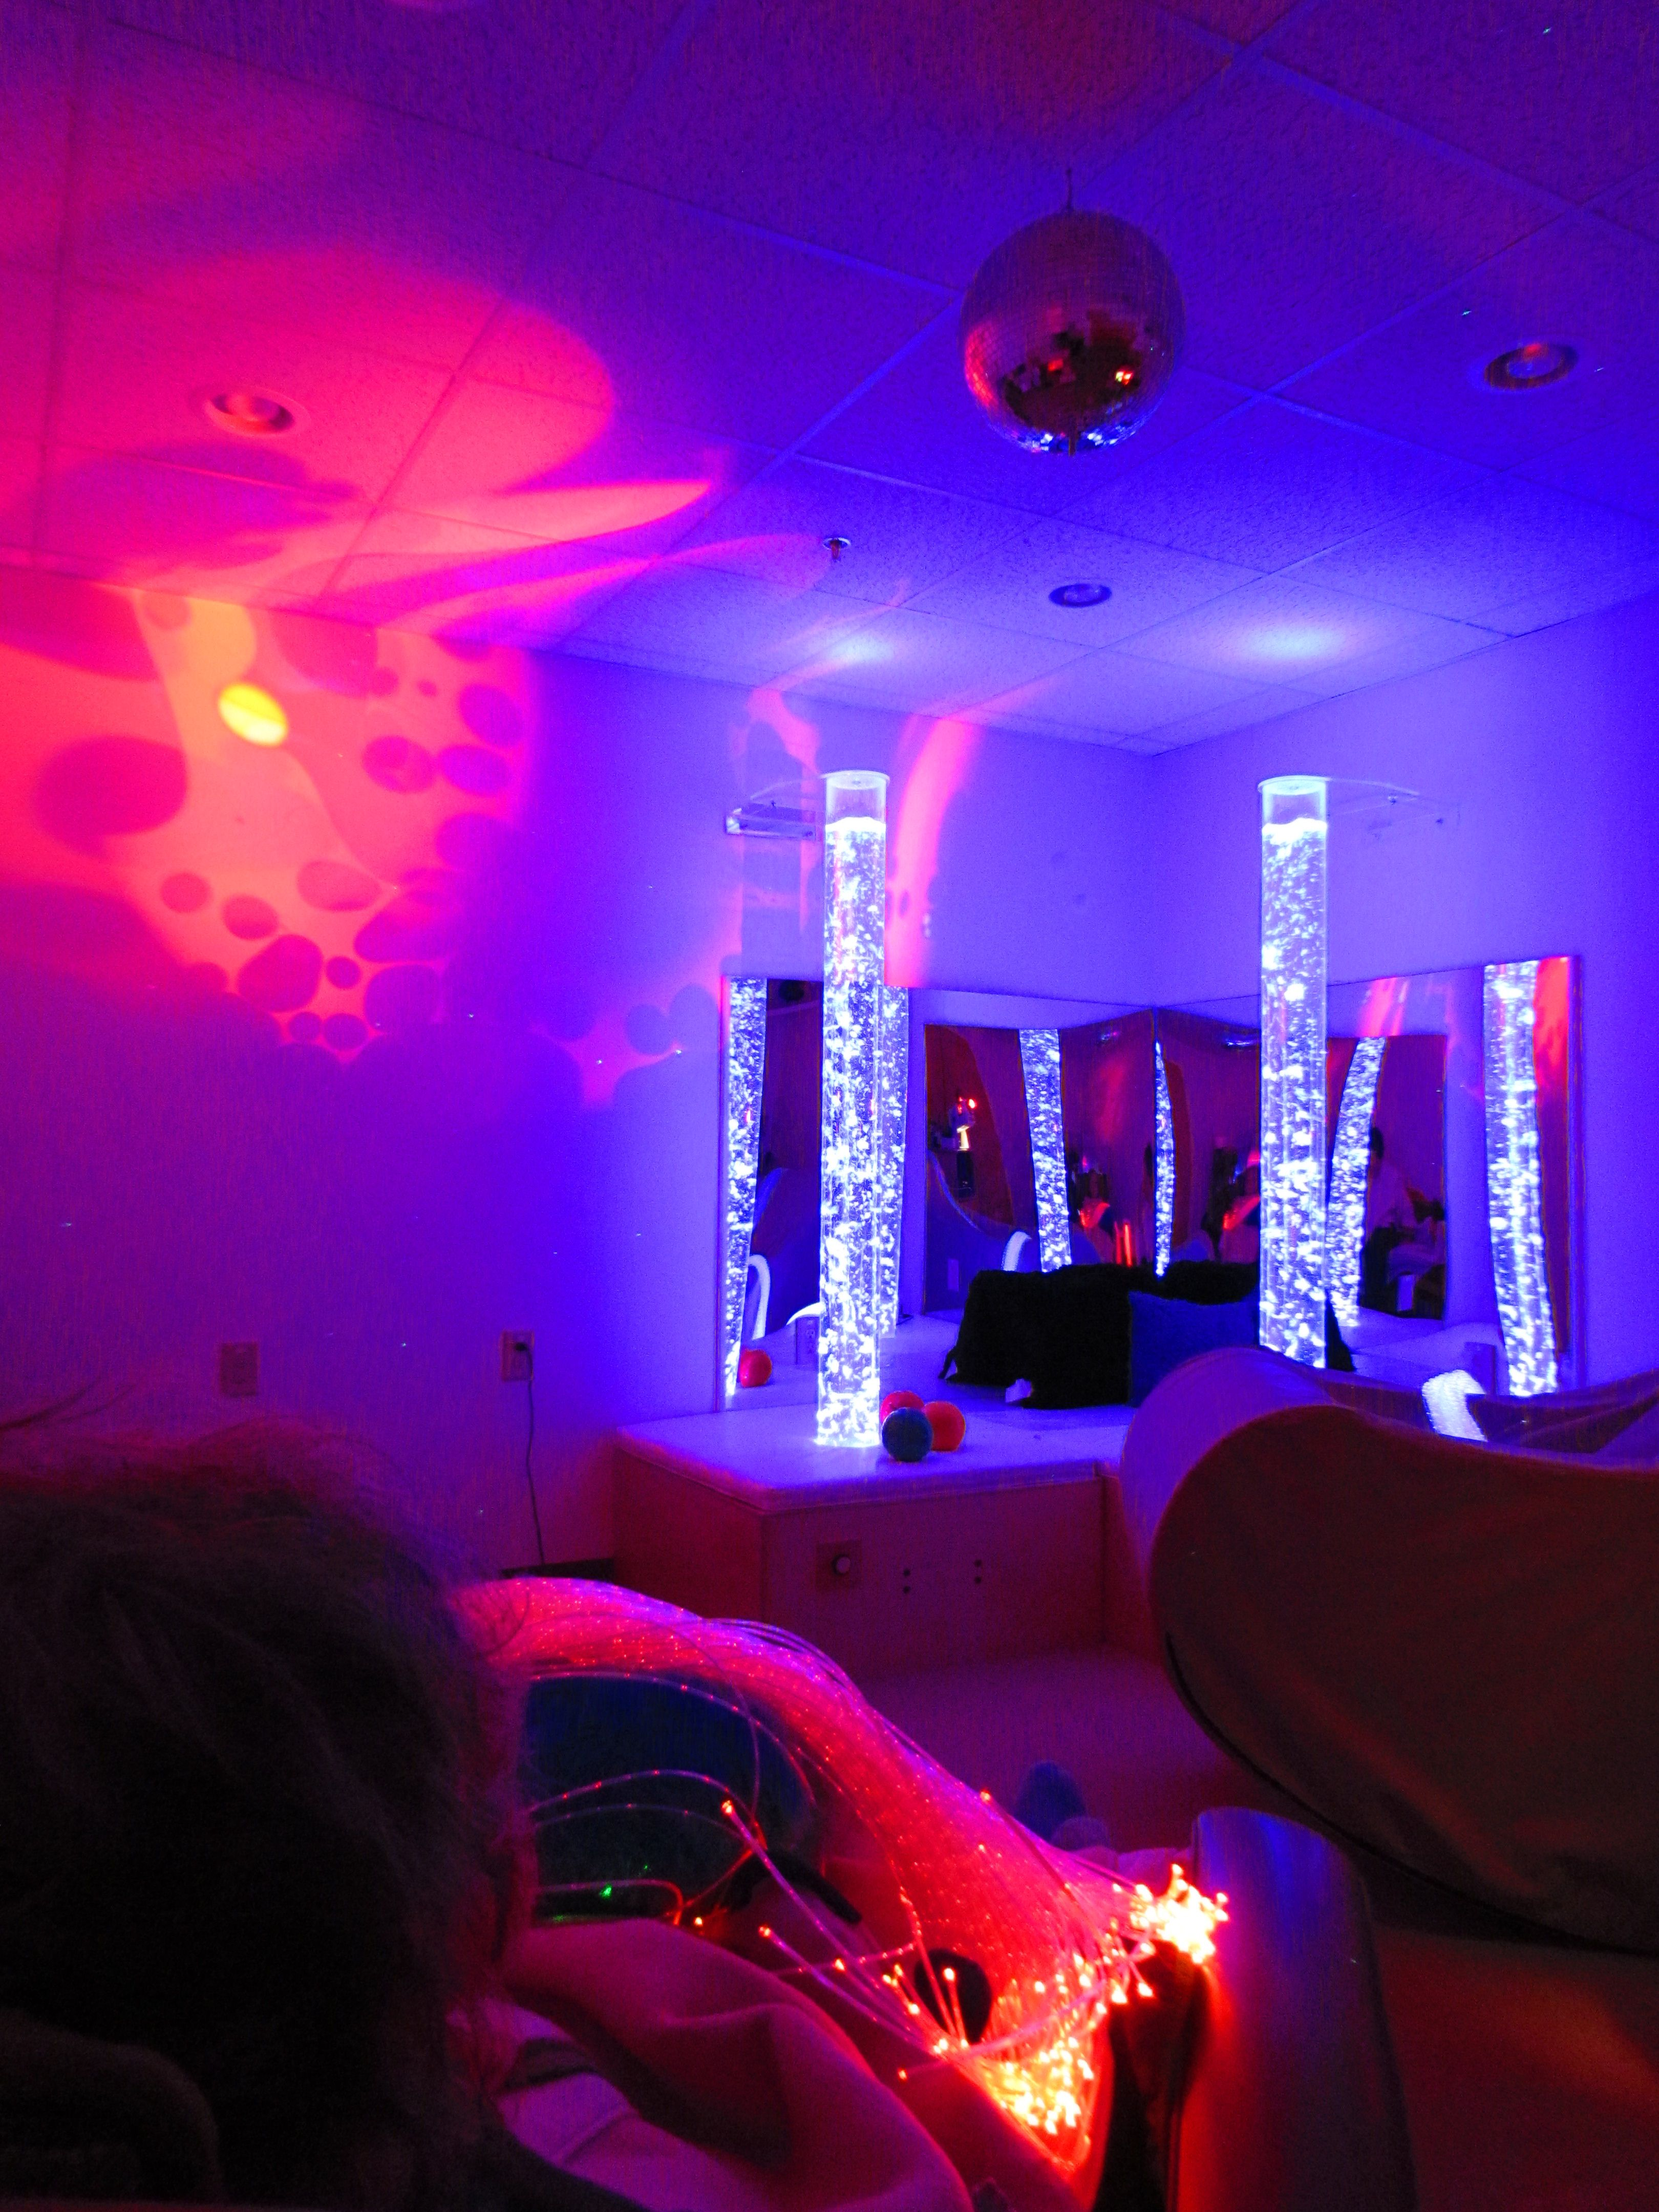 I think all rooms should have an element of this multi sensory